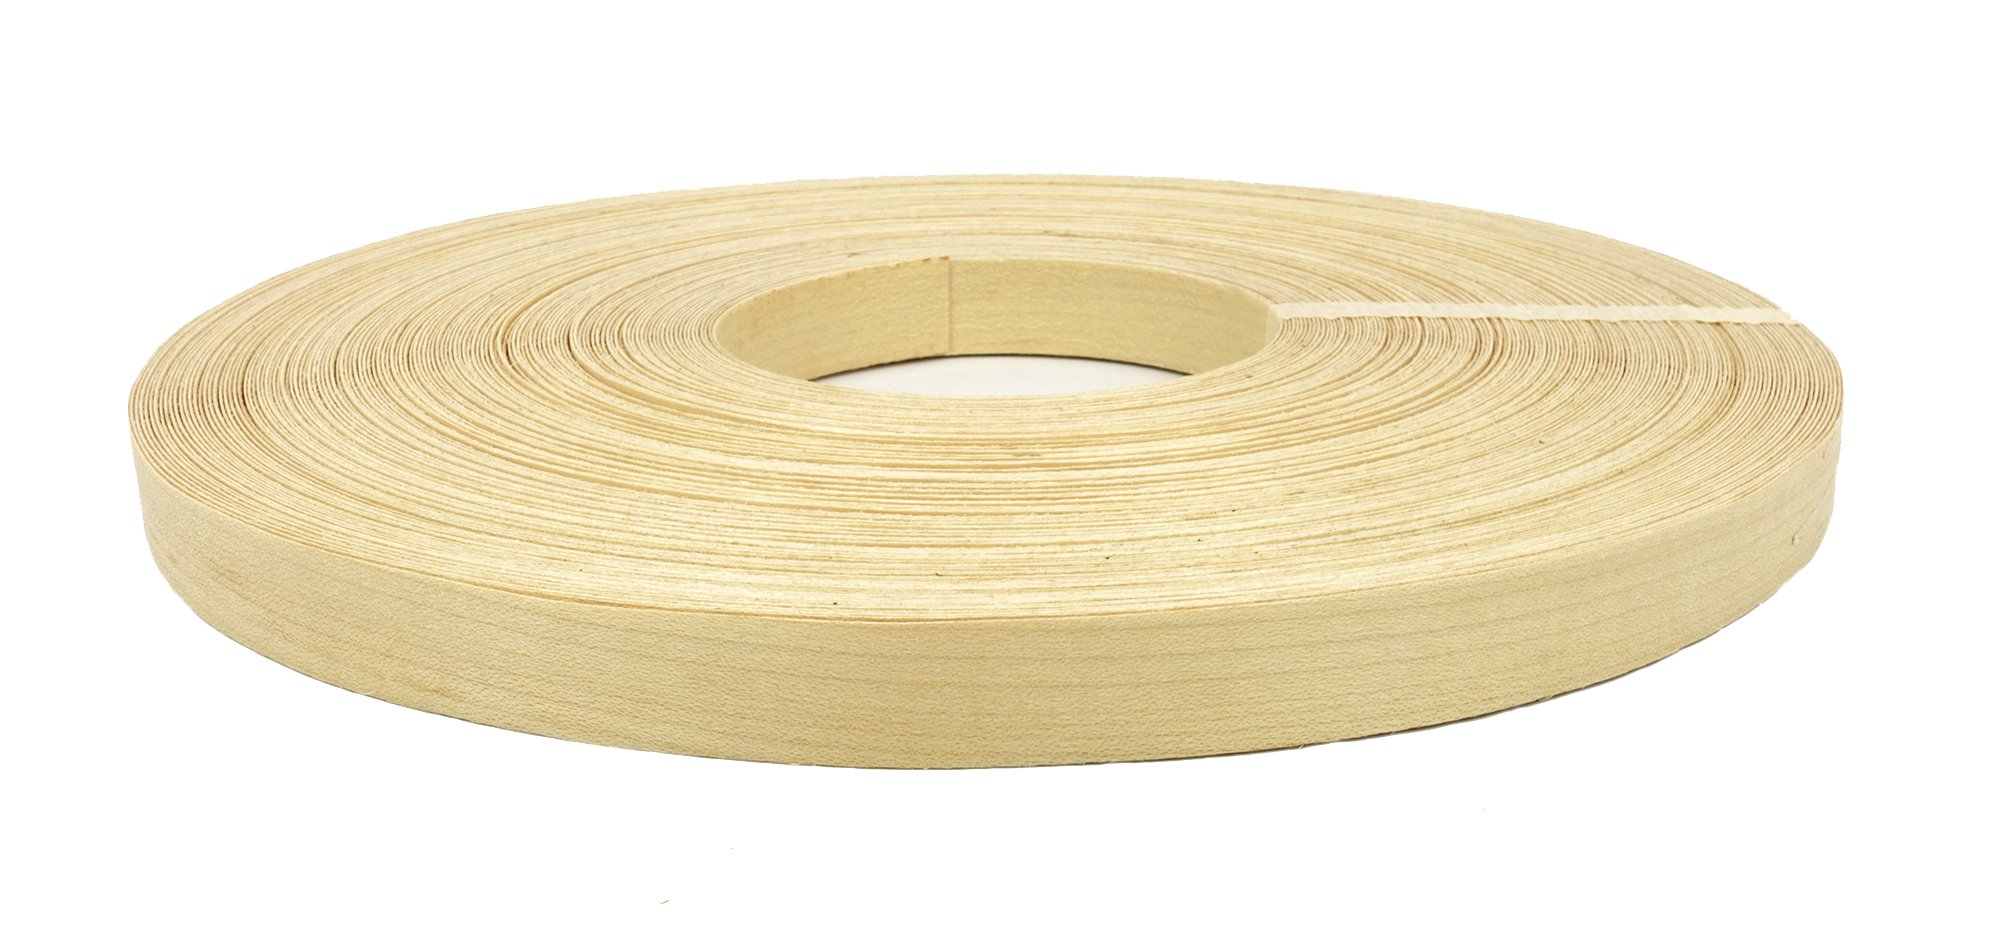 Maple Wood Veneer Edge Banding Preglued 3/4'' X 250' Roll